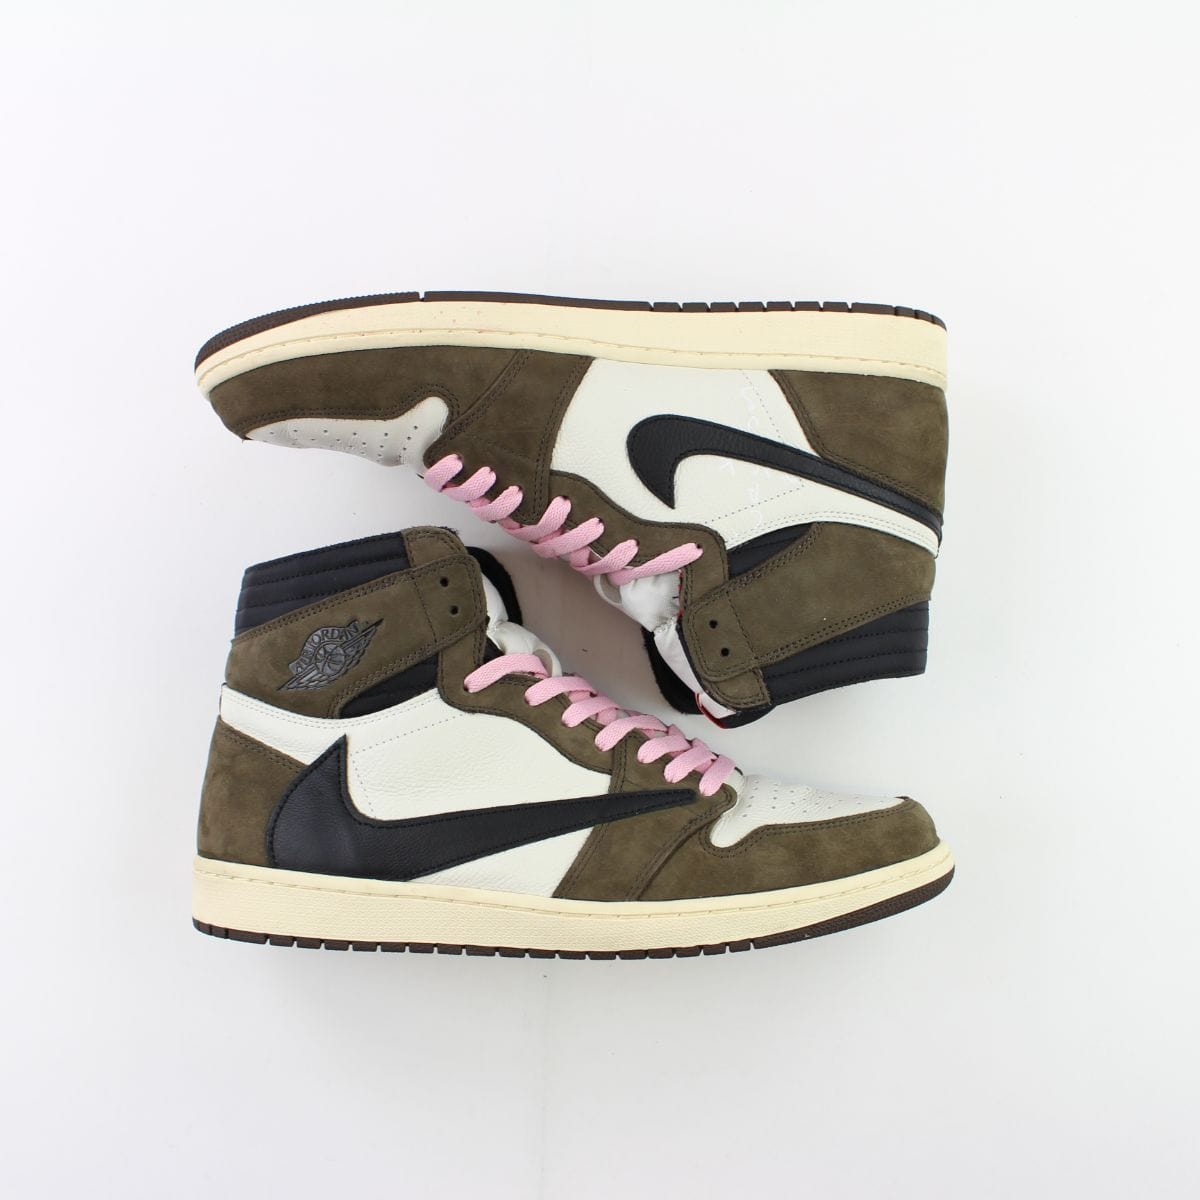 Nike x Travis Scott AJ1 High - SaruGeneral